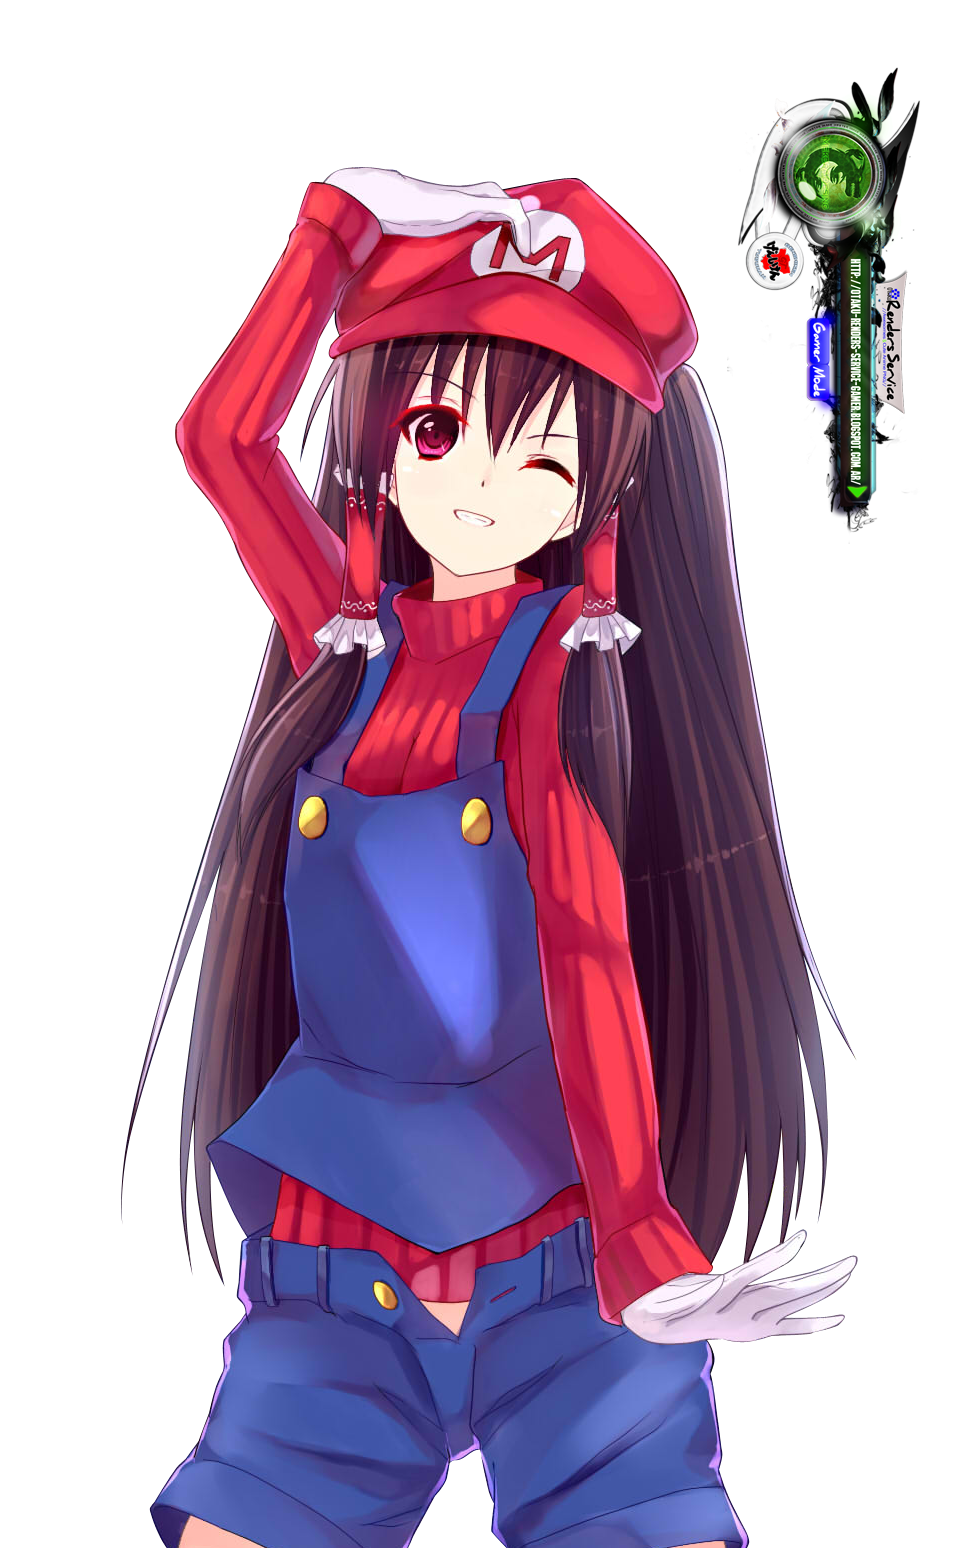 touhou project hakurei reimu cute mario cosplay render